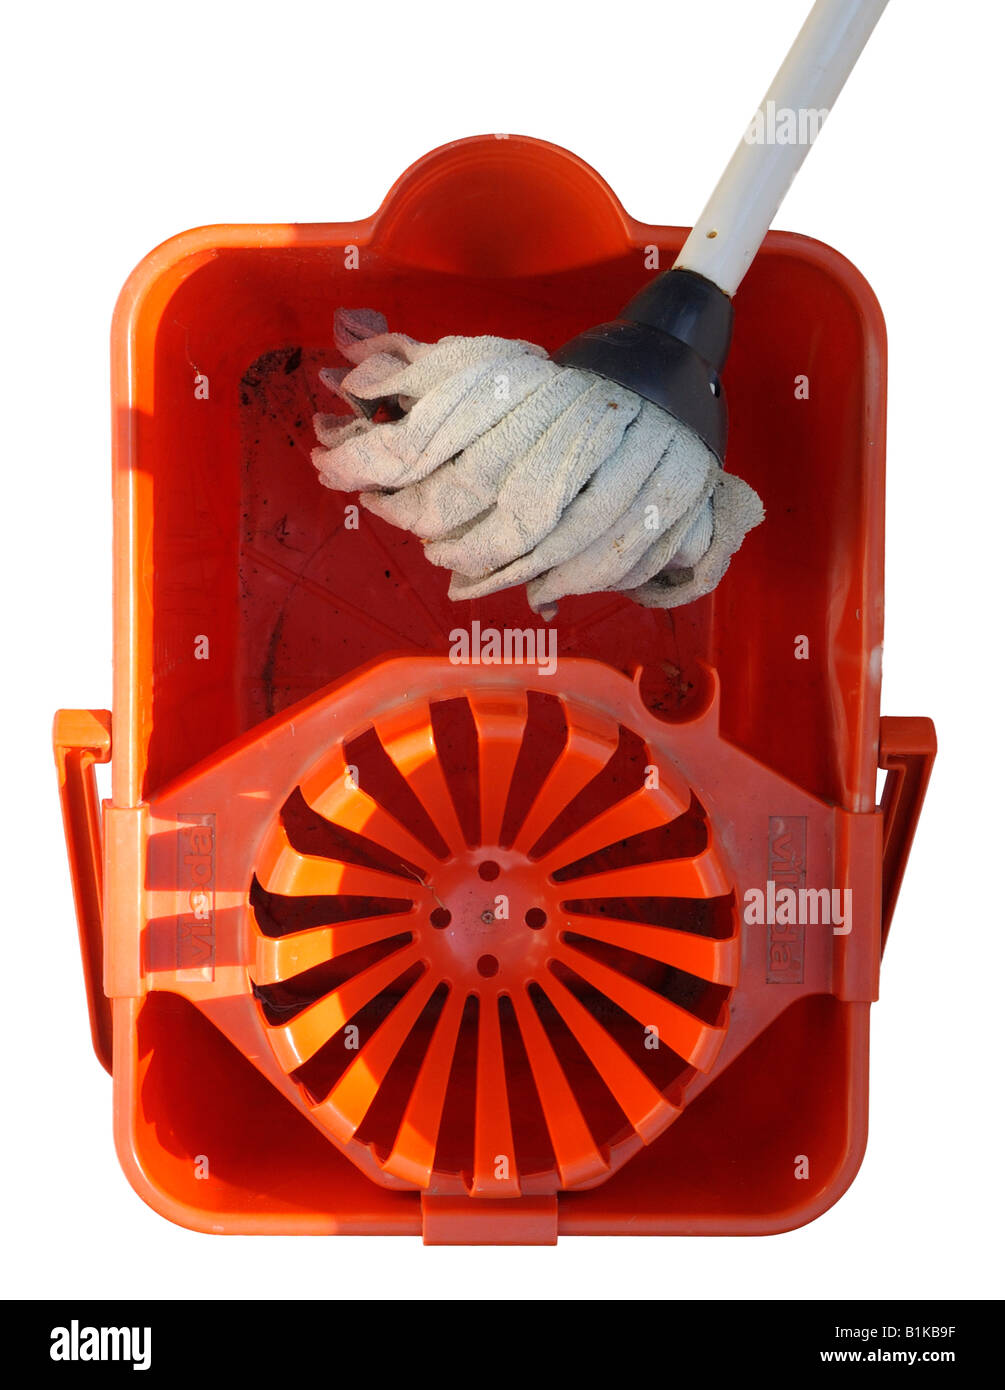 Mop and Empty Bucket - Stock Image